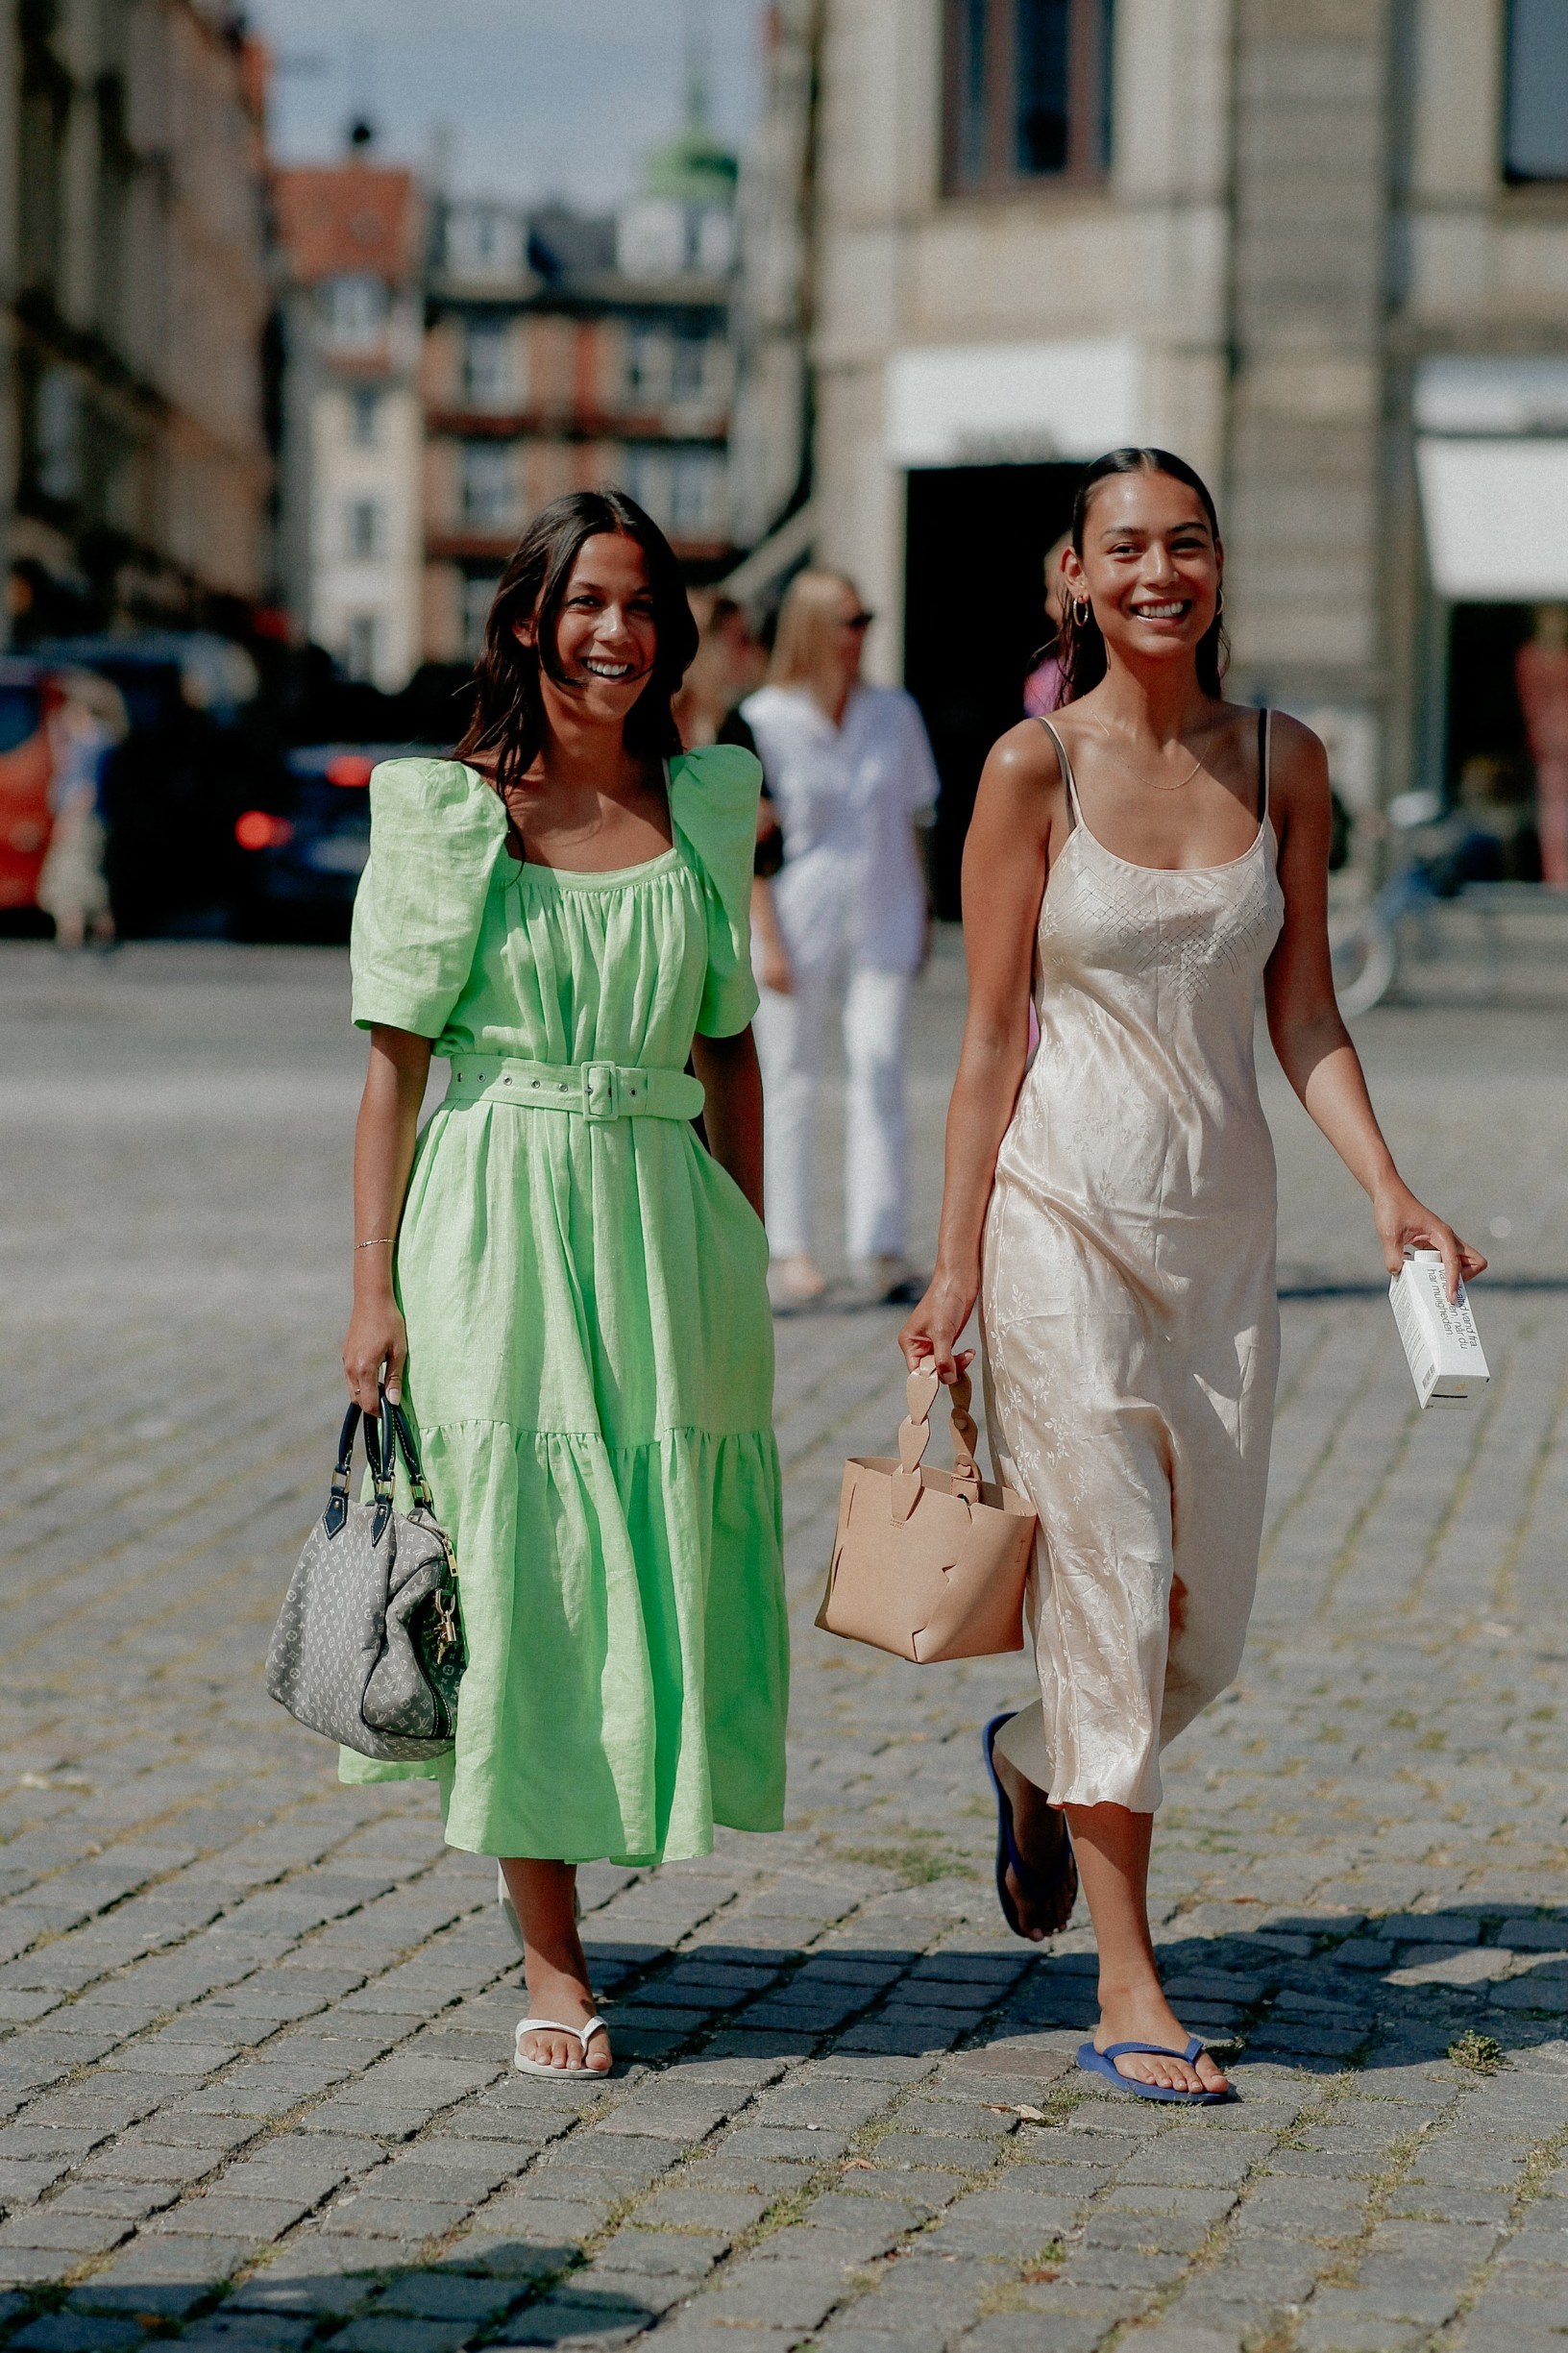 Street style, arriving at Helmstedt Spring Summer 2021 show, held at Kongens Nytorv, Copenhagen, Denmark, on August 12, 2020.,Image: 554930176, License: Rights-managed, Restrictions: , Model Release: no, Credit line: Bertrand-Hillion Marie-Paola/ABACA / Abaca Press / Profimedia